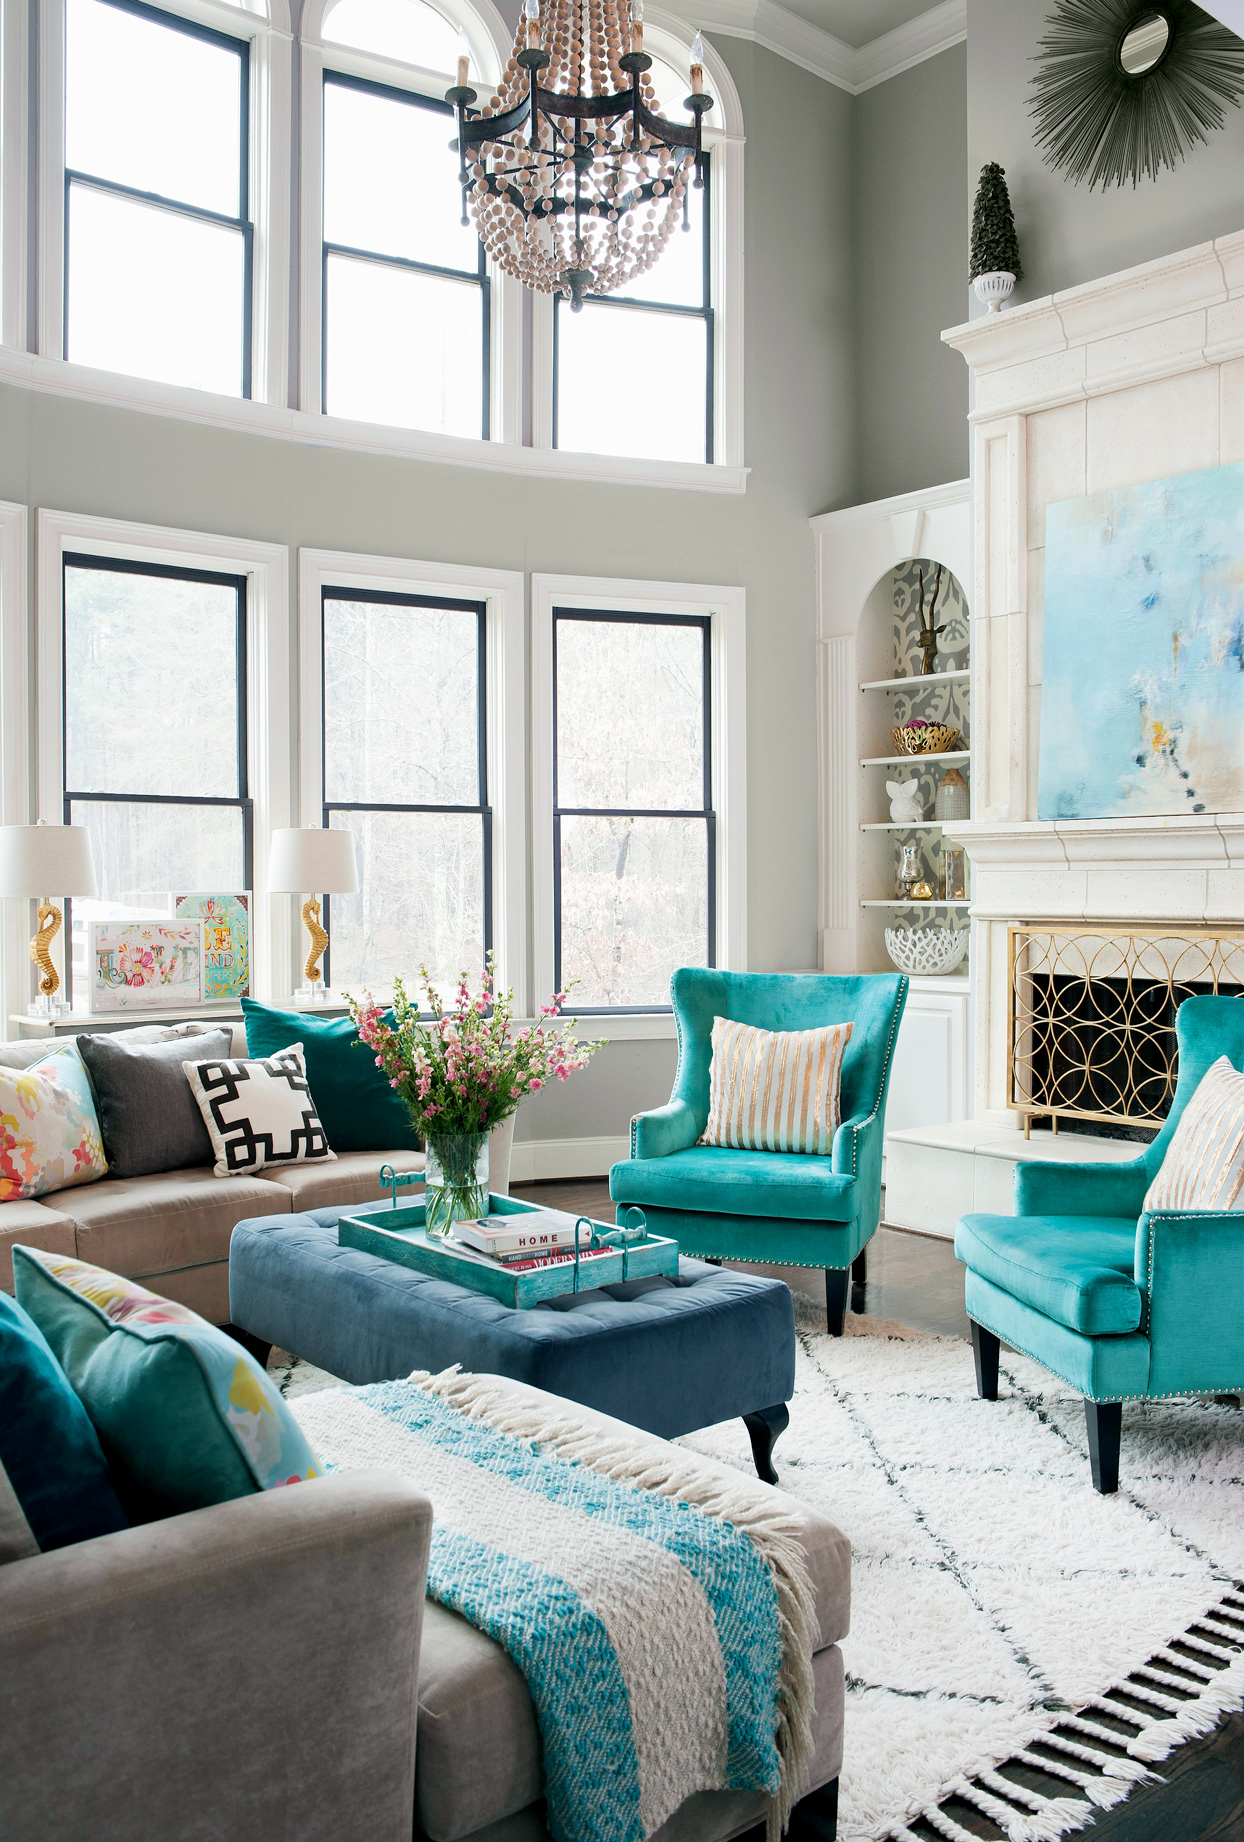 9 Living Room Color Schemes for a Cozy, Livable Space  Better